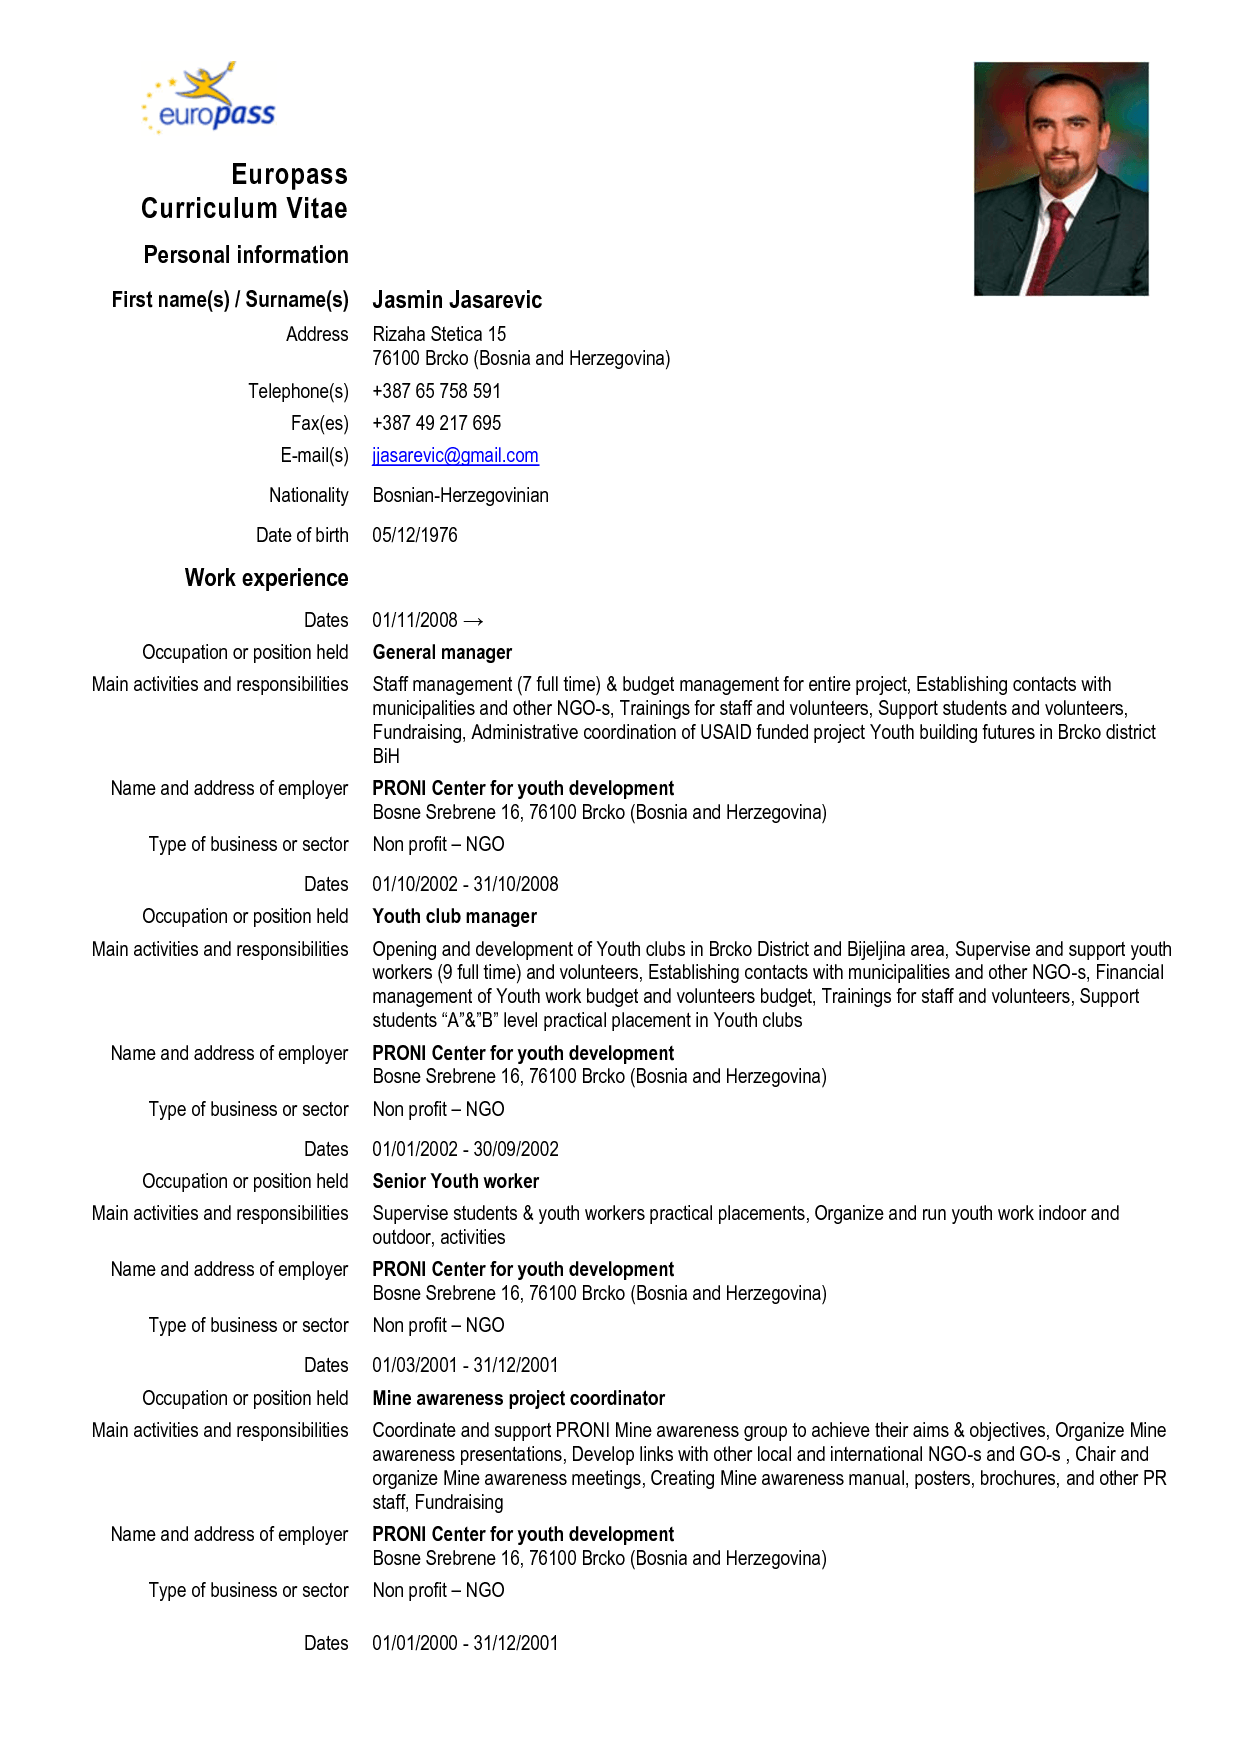 cv template europass download